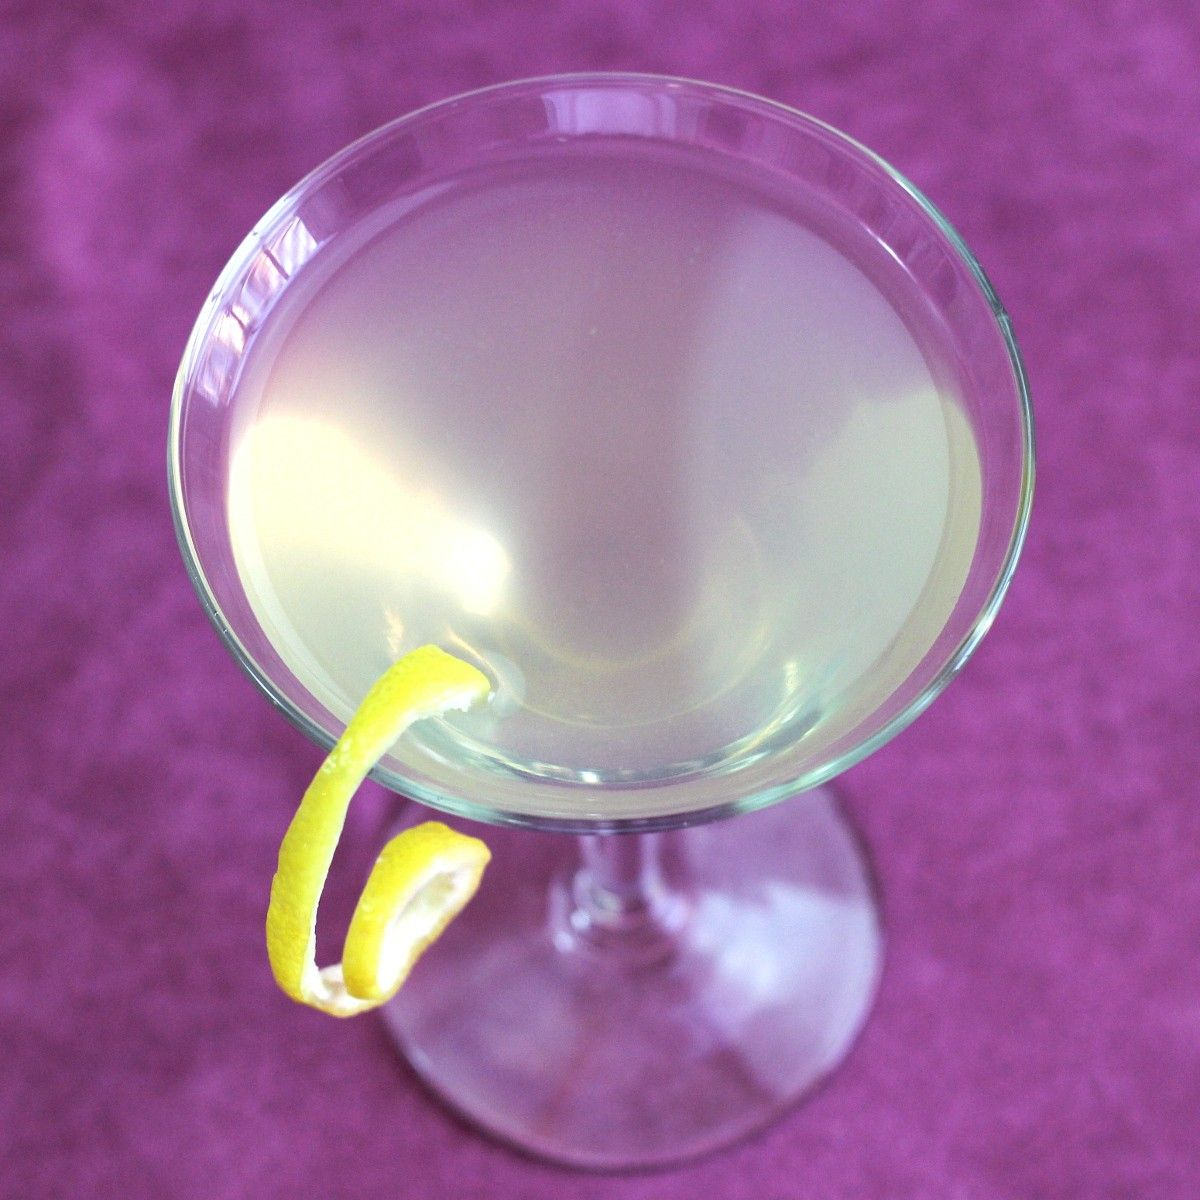 Cloudy clear cocktail in martini glass with lemon twist, dark blue background